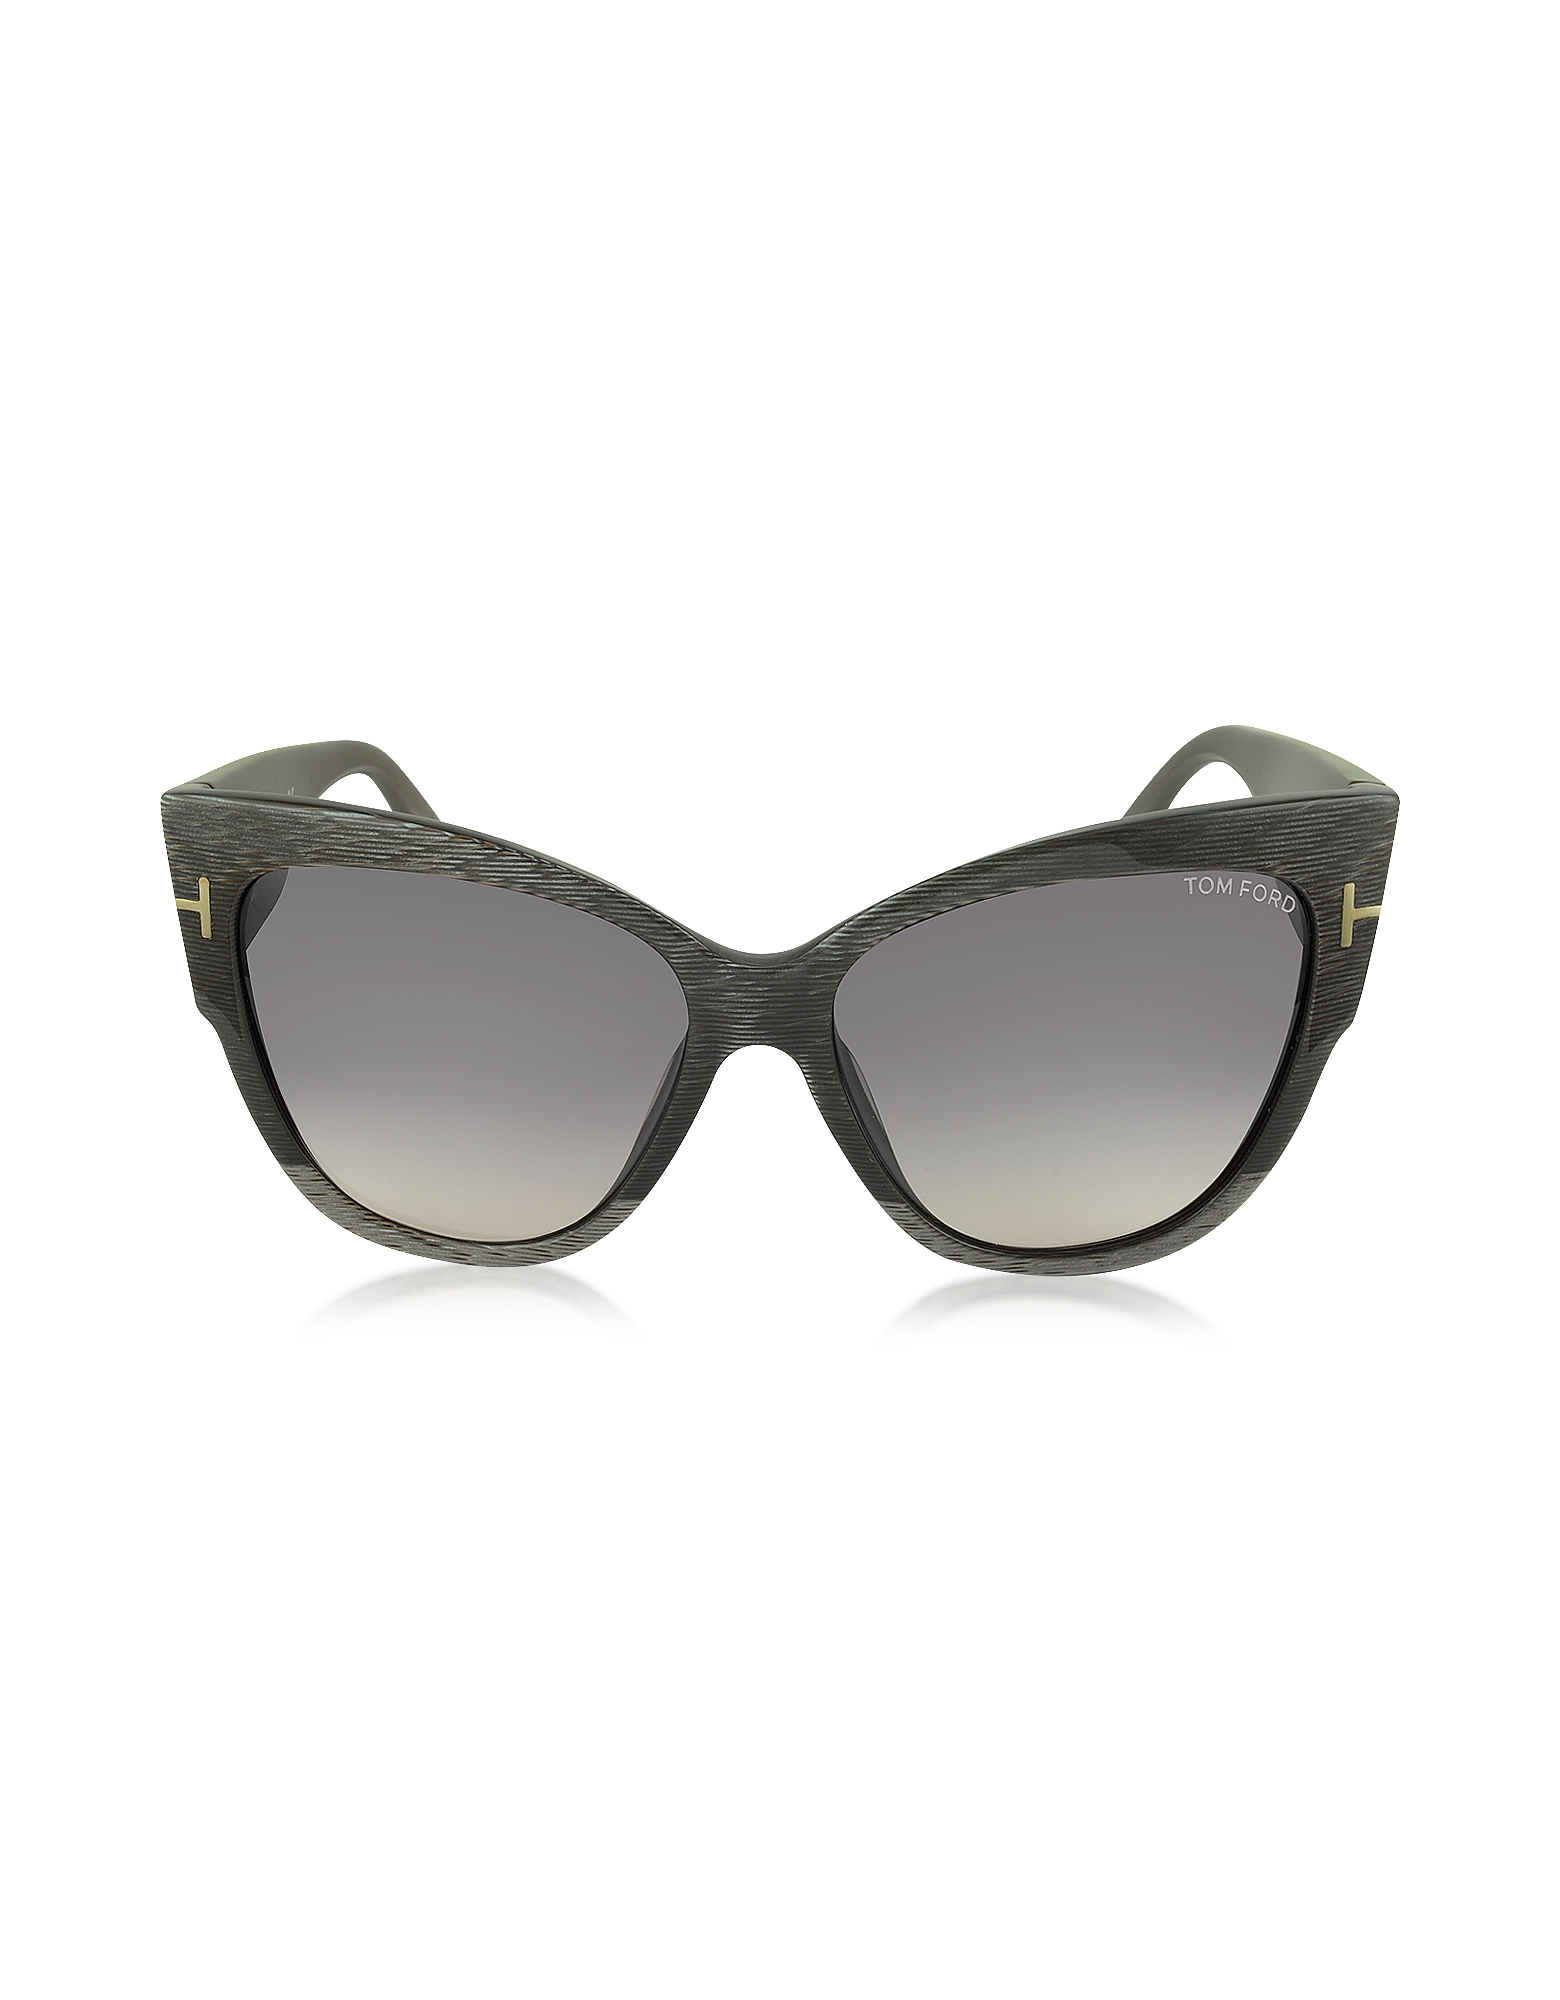 Tom Ford Sunglasses, ANOUSHKA FT0371 38B Dove Grey Cat Eye Sunglasses